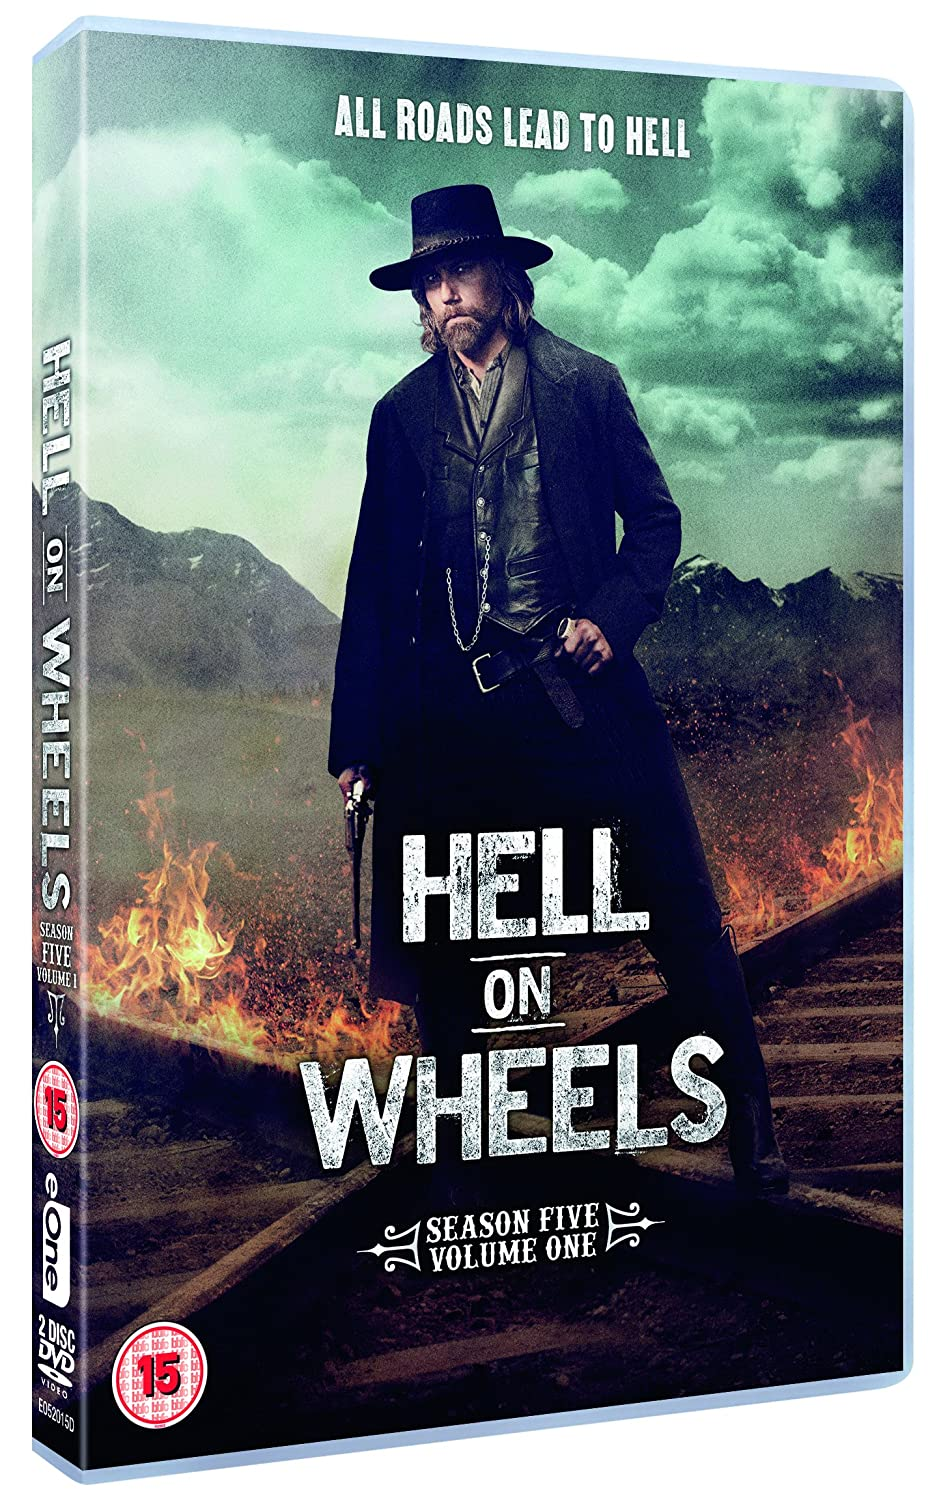 Hell on Wheels - Season 5: Volume 1 [DVD]: Amazon.co.uk: Anson Mount, Colm  Meaney, Common, Christopher Heyderdahl, Jake Weber, Robin McLeavy: DVD &  Blu-ray